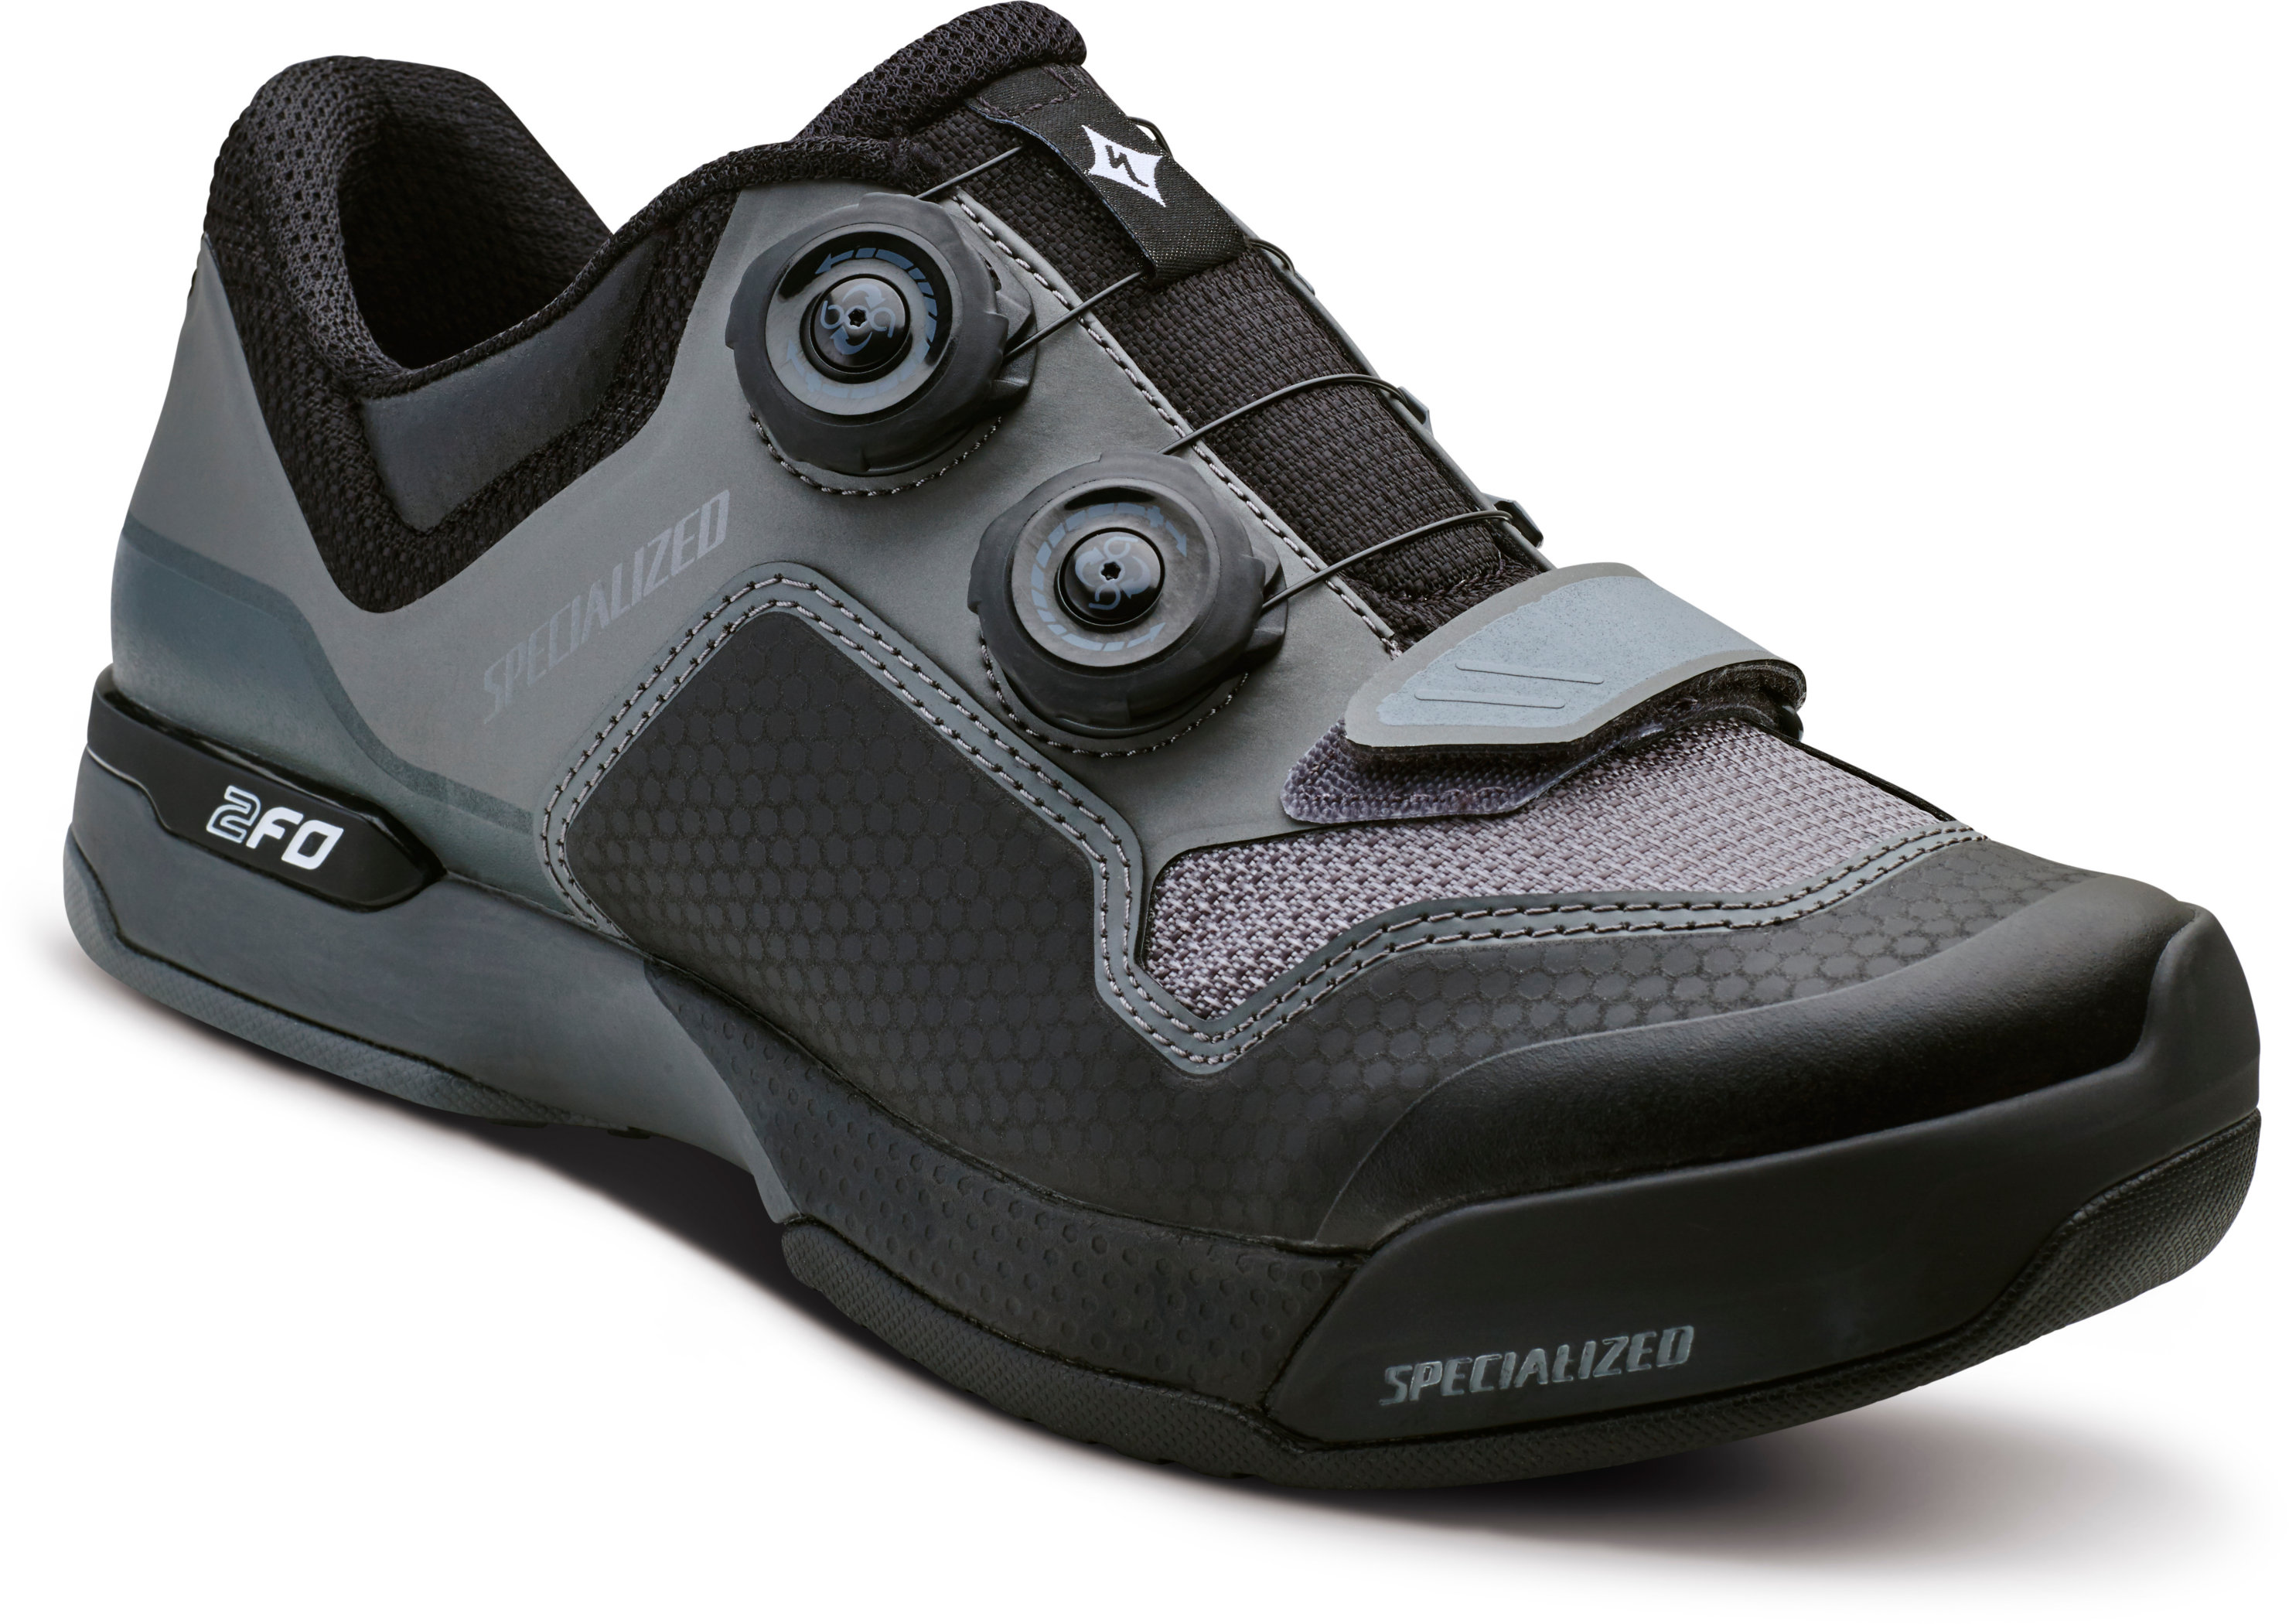 SPECIALIZED 2FO CLIPLITE MTB SHOE WMN BLK/DKGRY 36/5.75 - Bike Zone